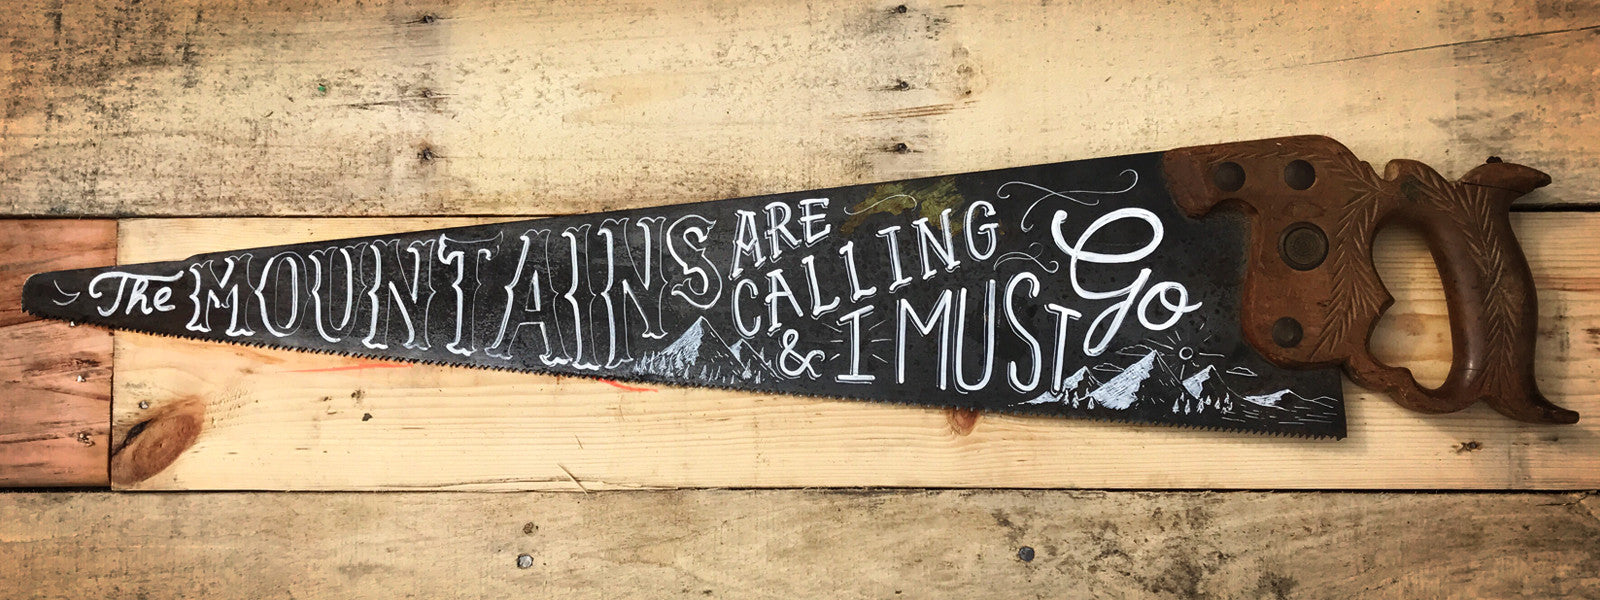 Mountains are Calling Hand-Lettered Saw